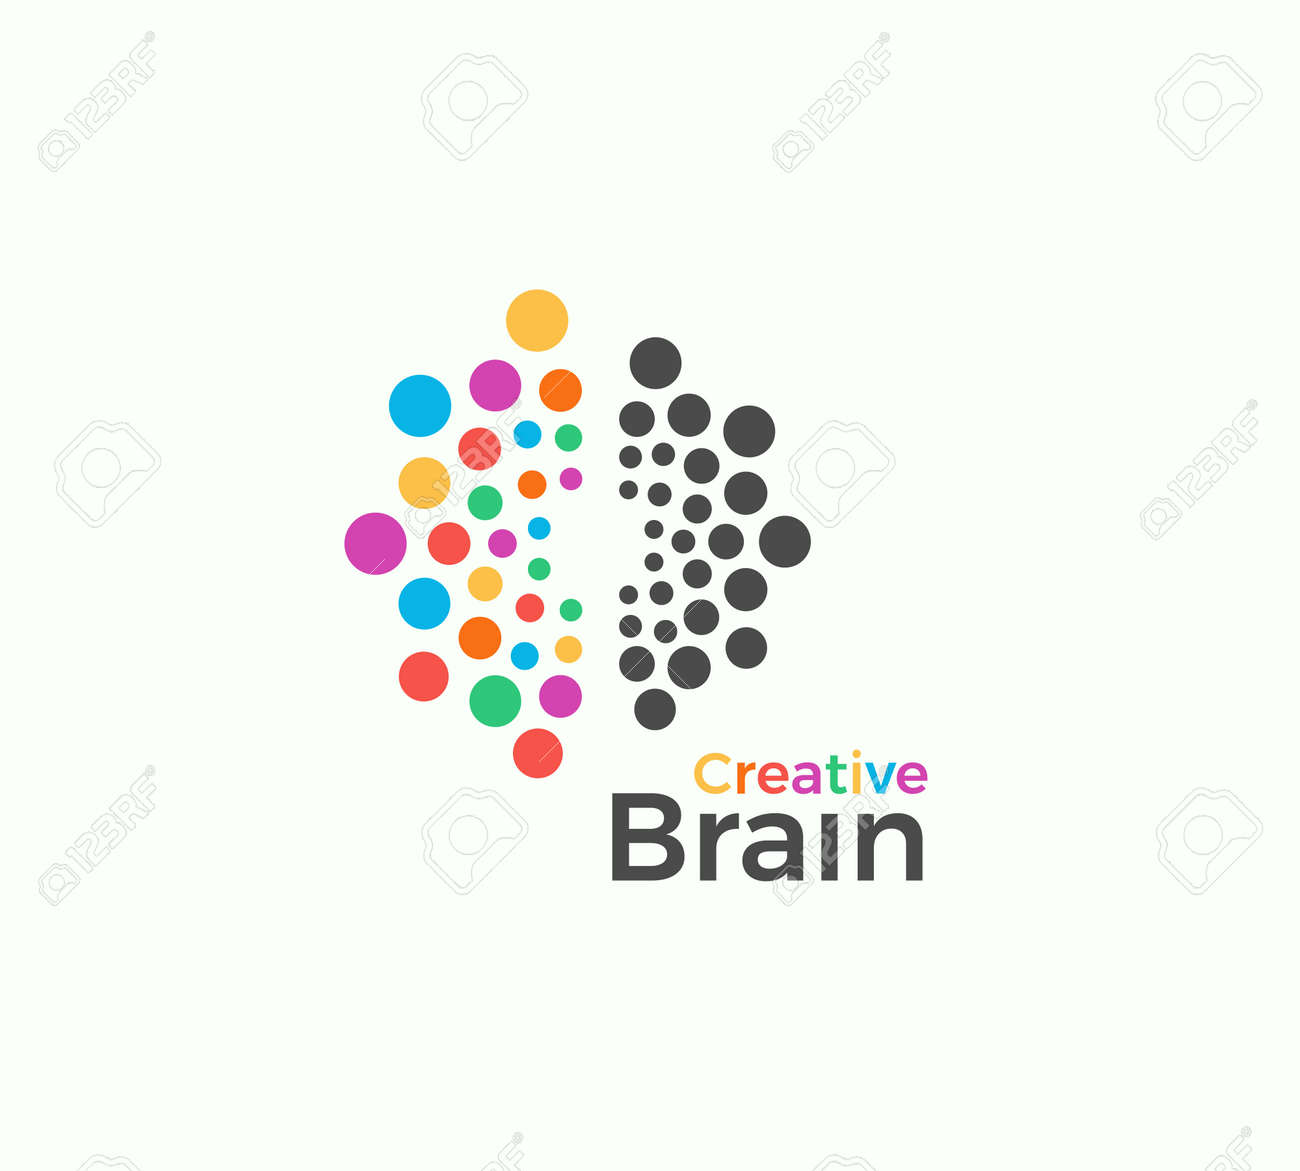 Creative Brain vector logo template in colored dots style. Creative imagination, inspiration abstract icon on white background. Left and right brain hemispheres vector illustration for creativity art - 165910110